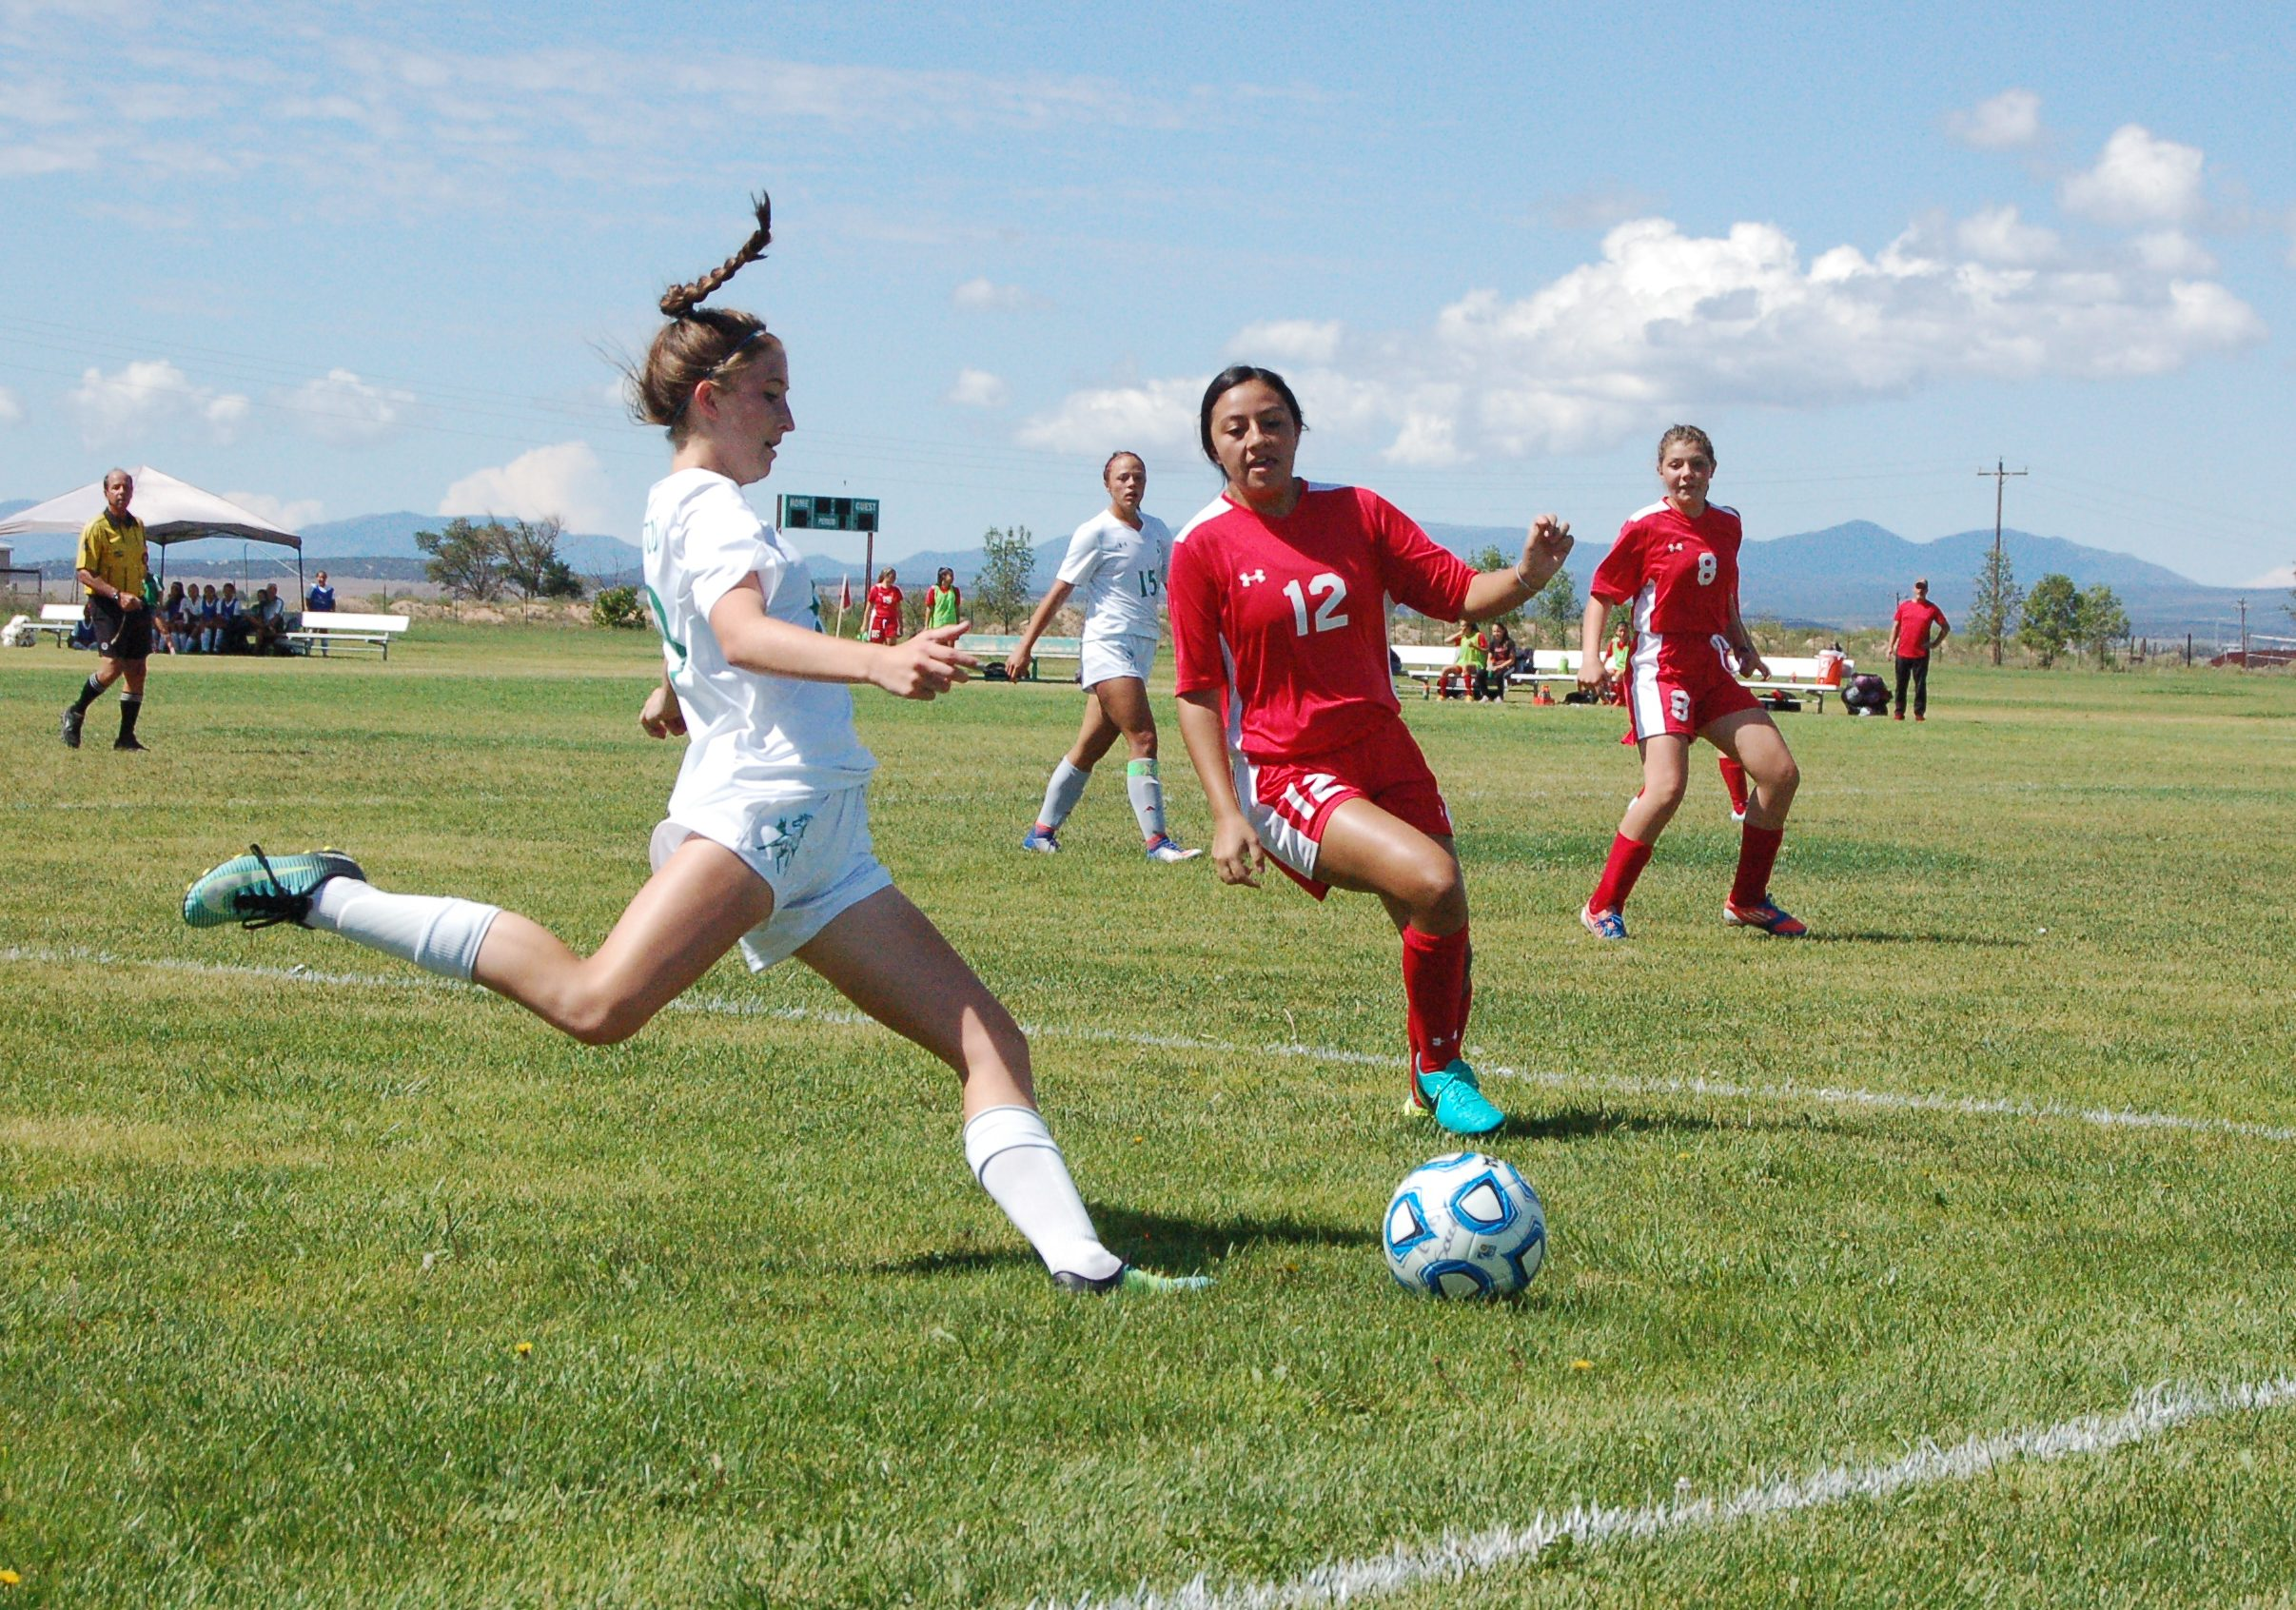 Moriarty girls soccer beats Robertson 3-2 in 'grudge match'